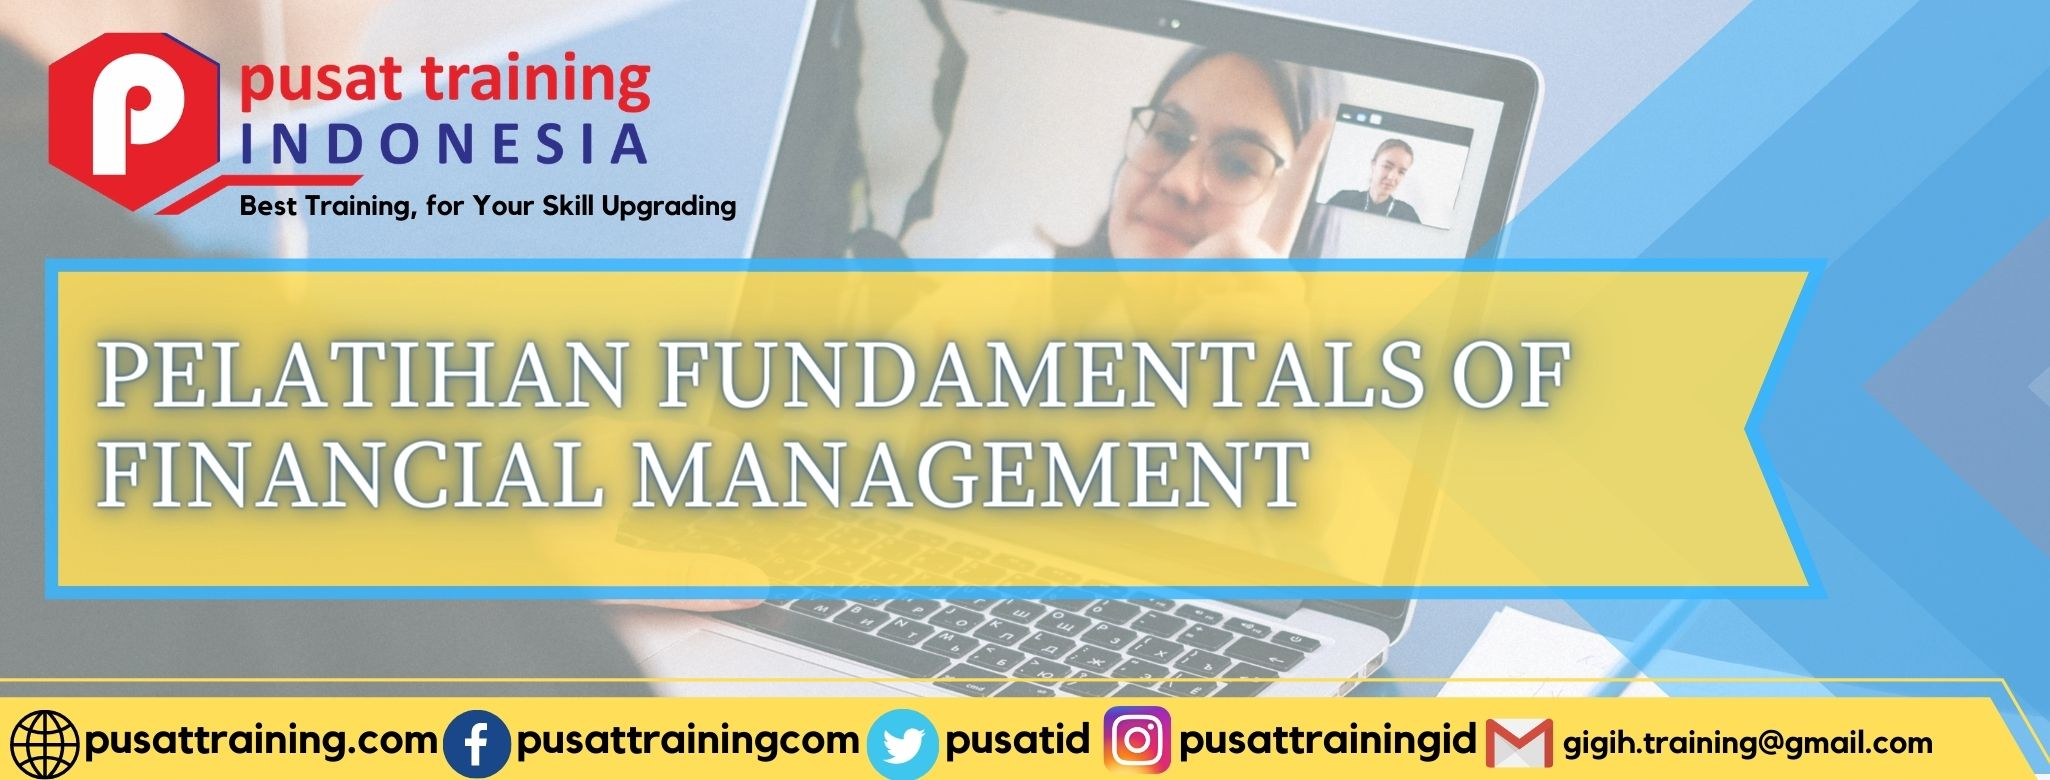 pelatihan-fundamentals-of-financial-management